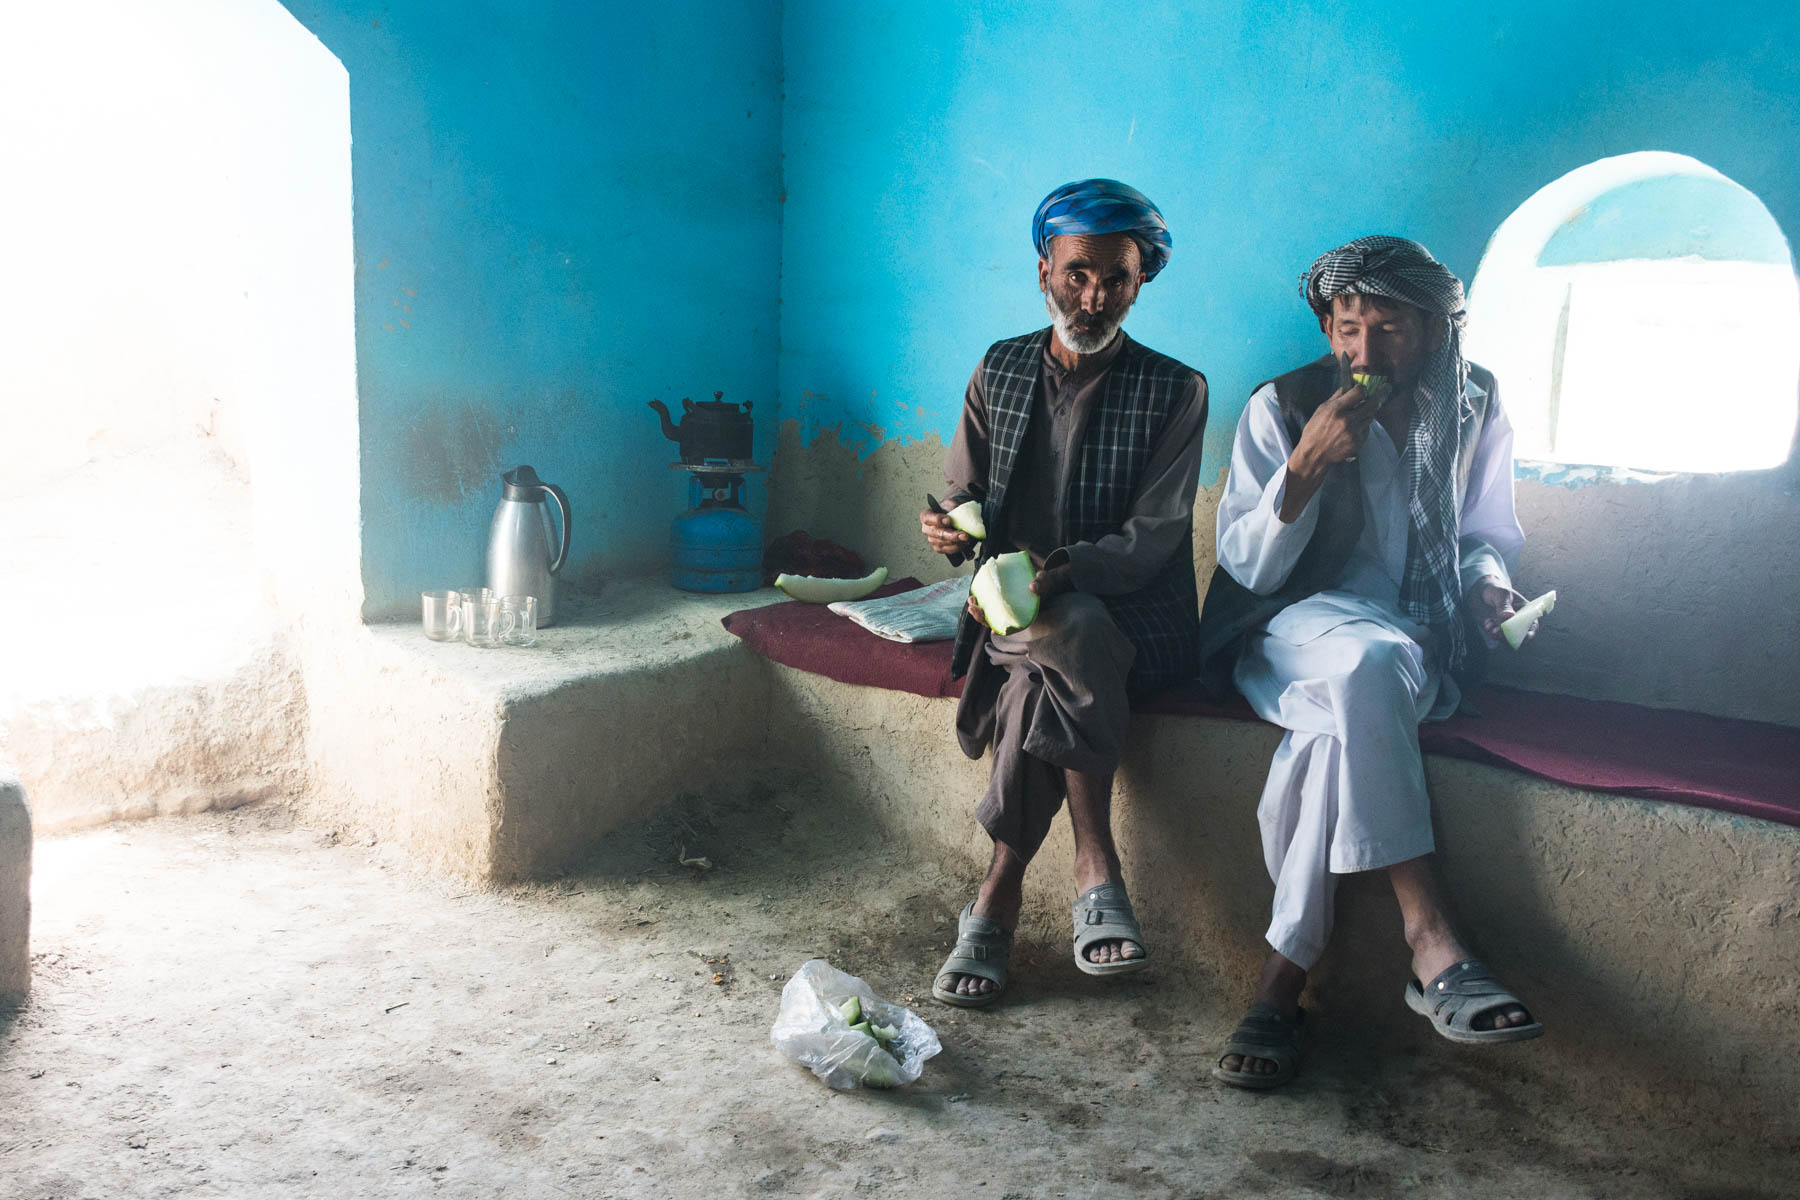 Shepherds in Balkh, Afghanistan - Lost With Purpose